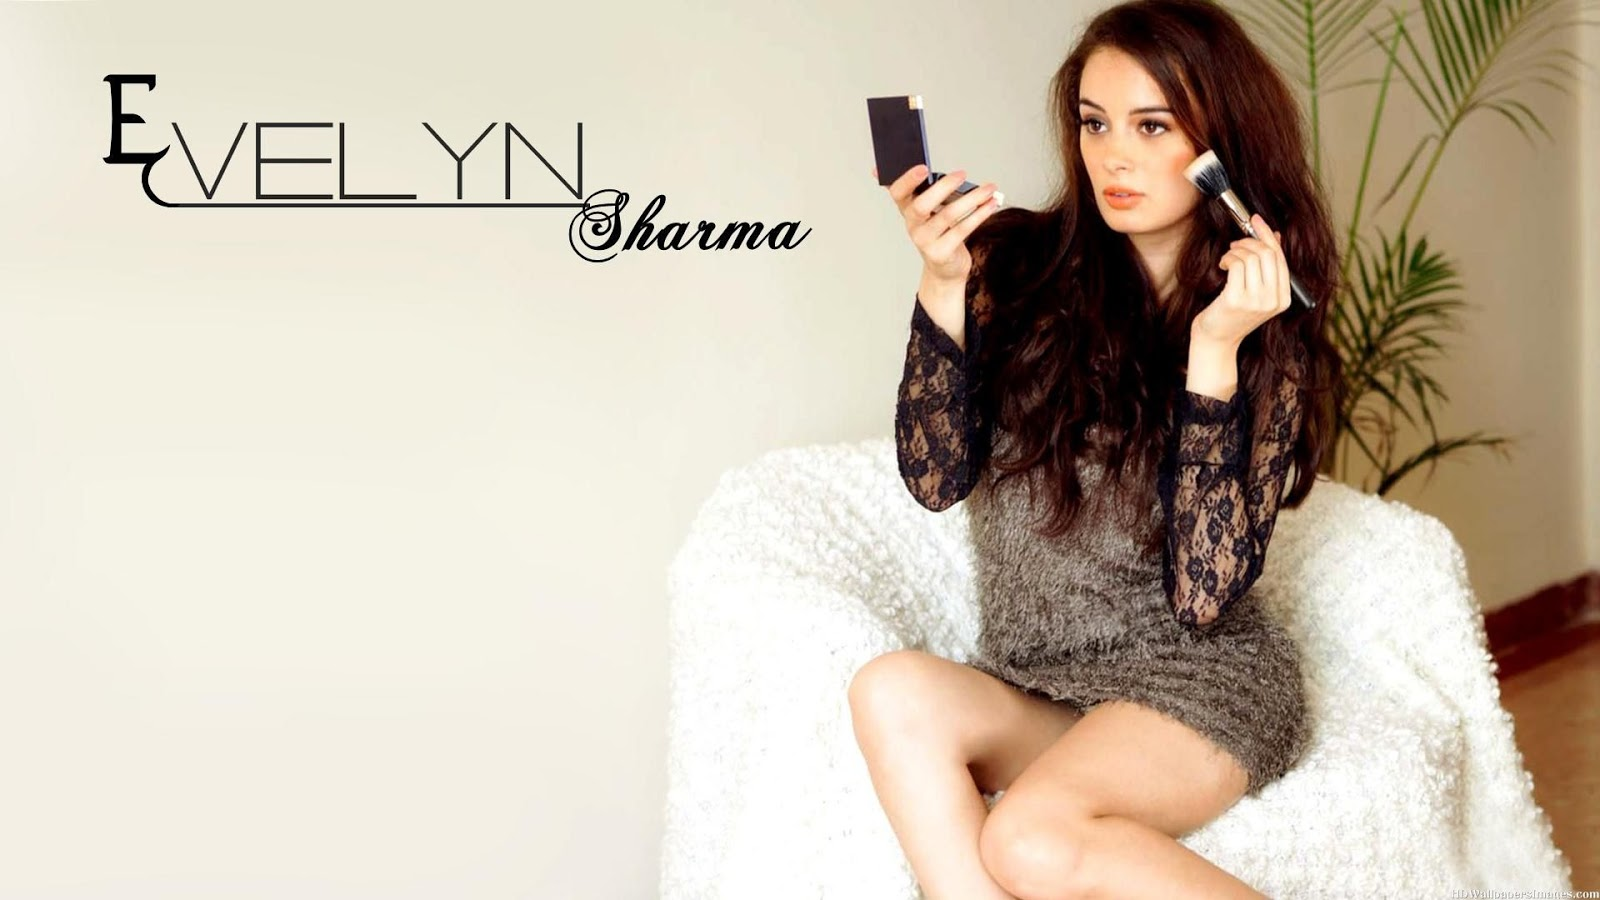 Evelyn Sharma 6 wallpapers (67 Wallpapers) - HD Wallpapers